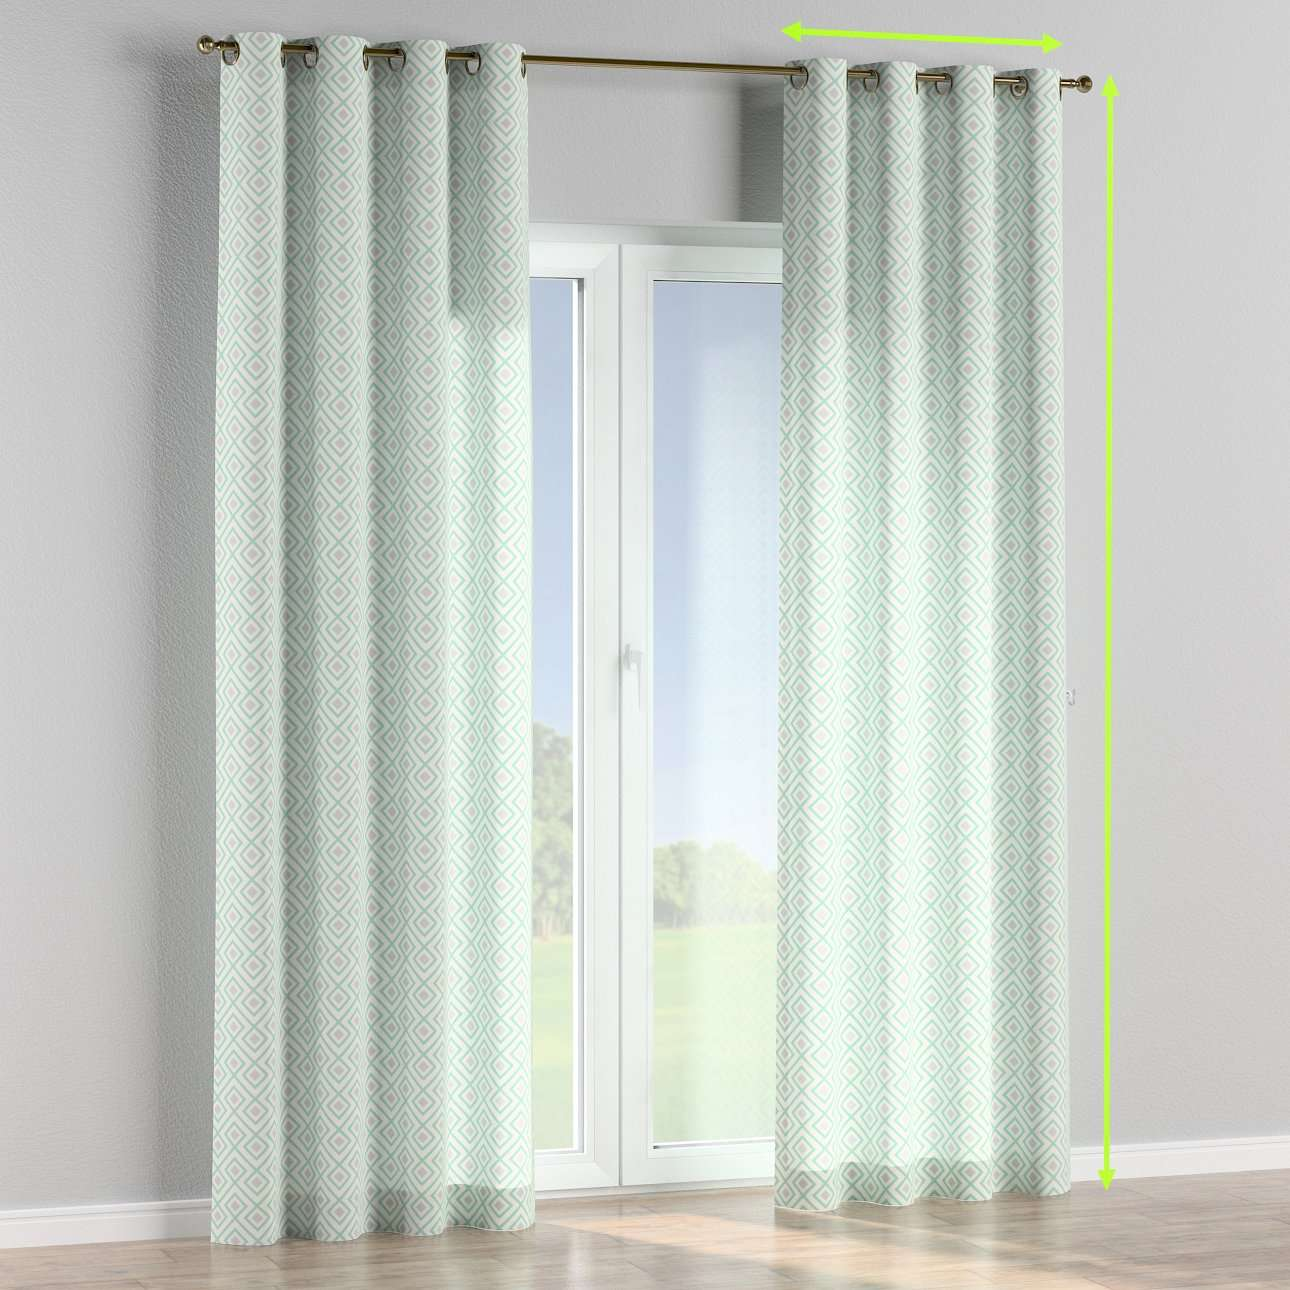 Eyelet lined curtains in collection Geometric, fabric: 141-45